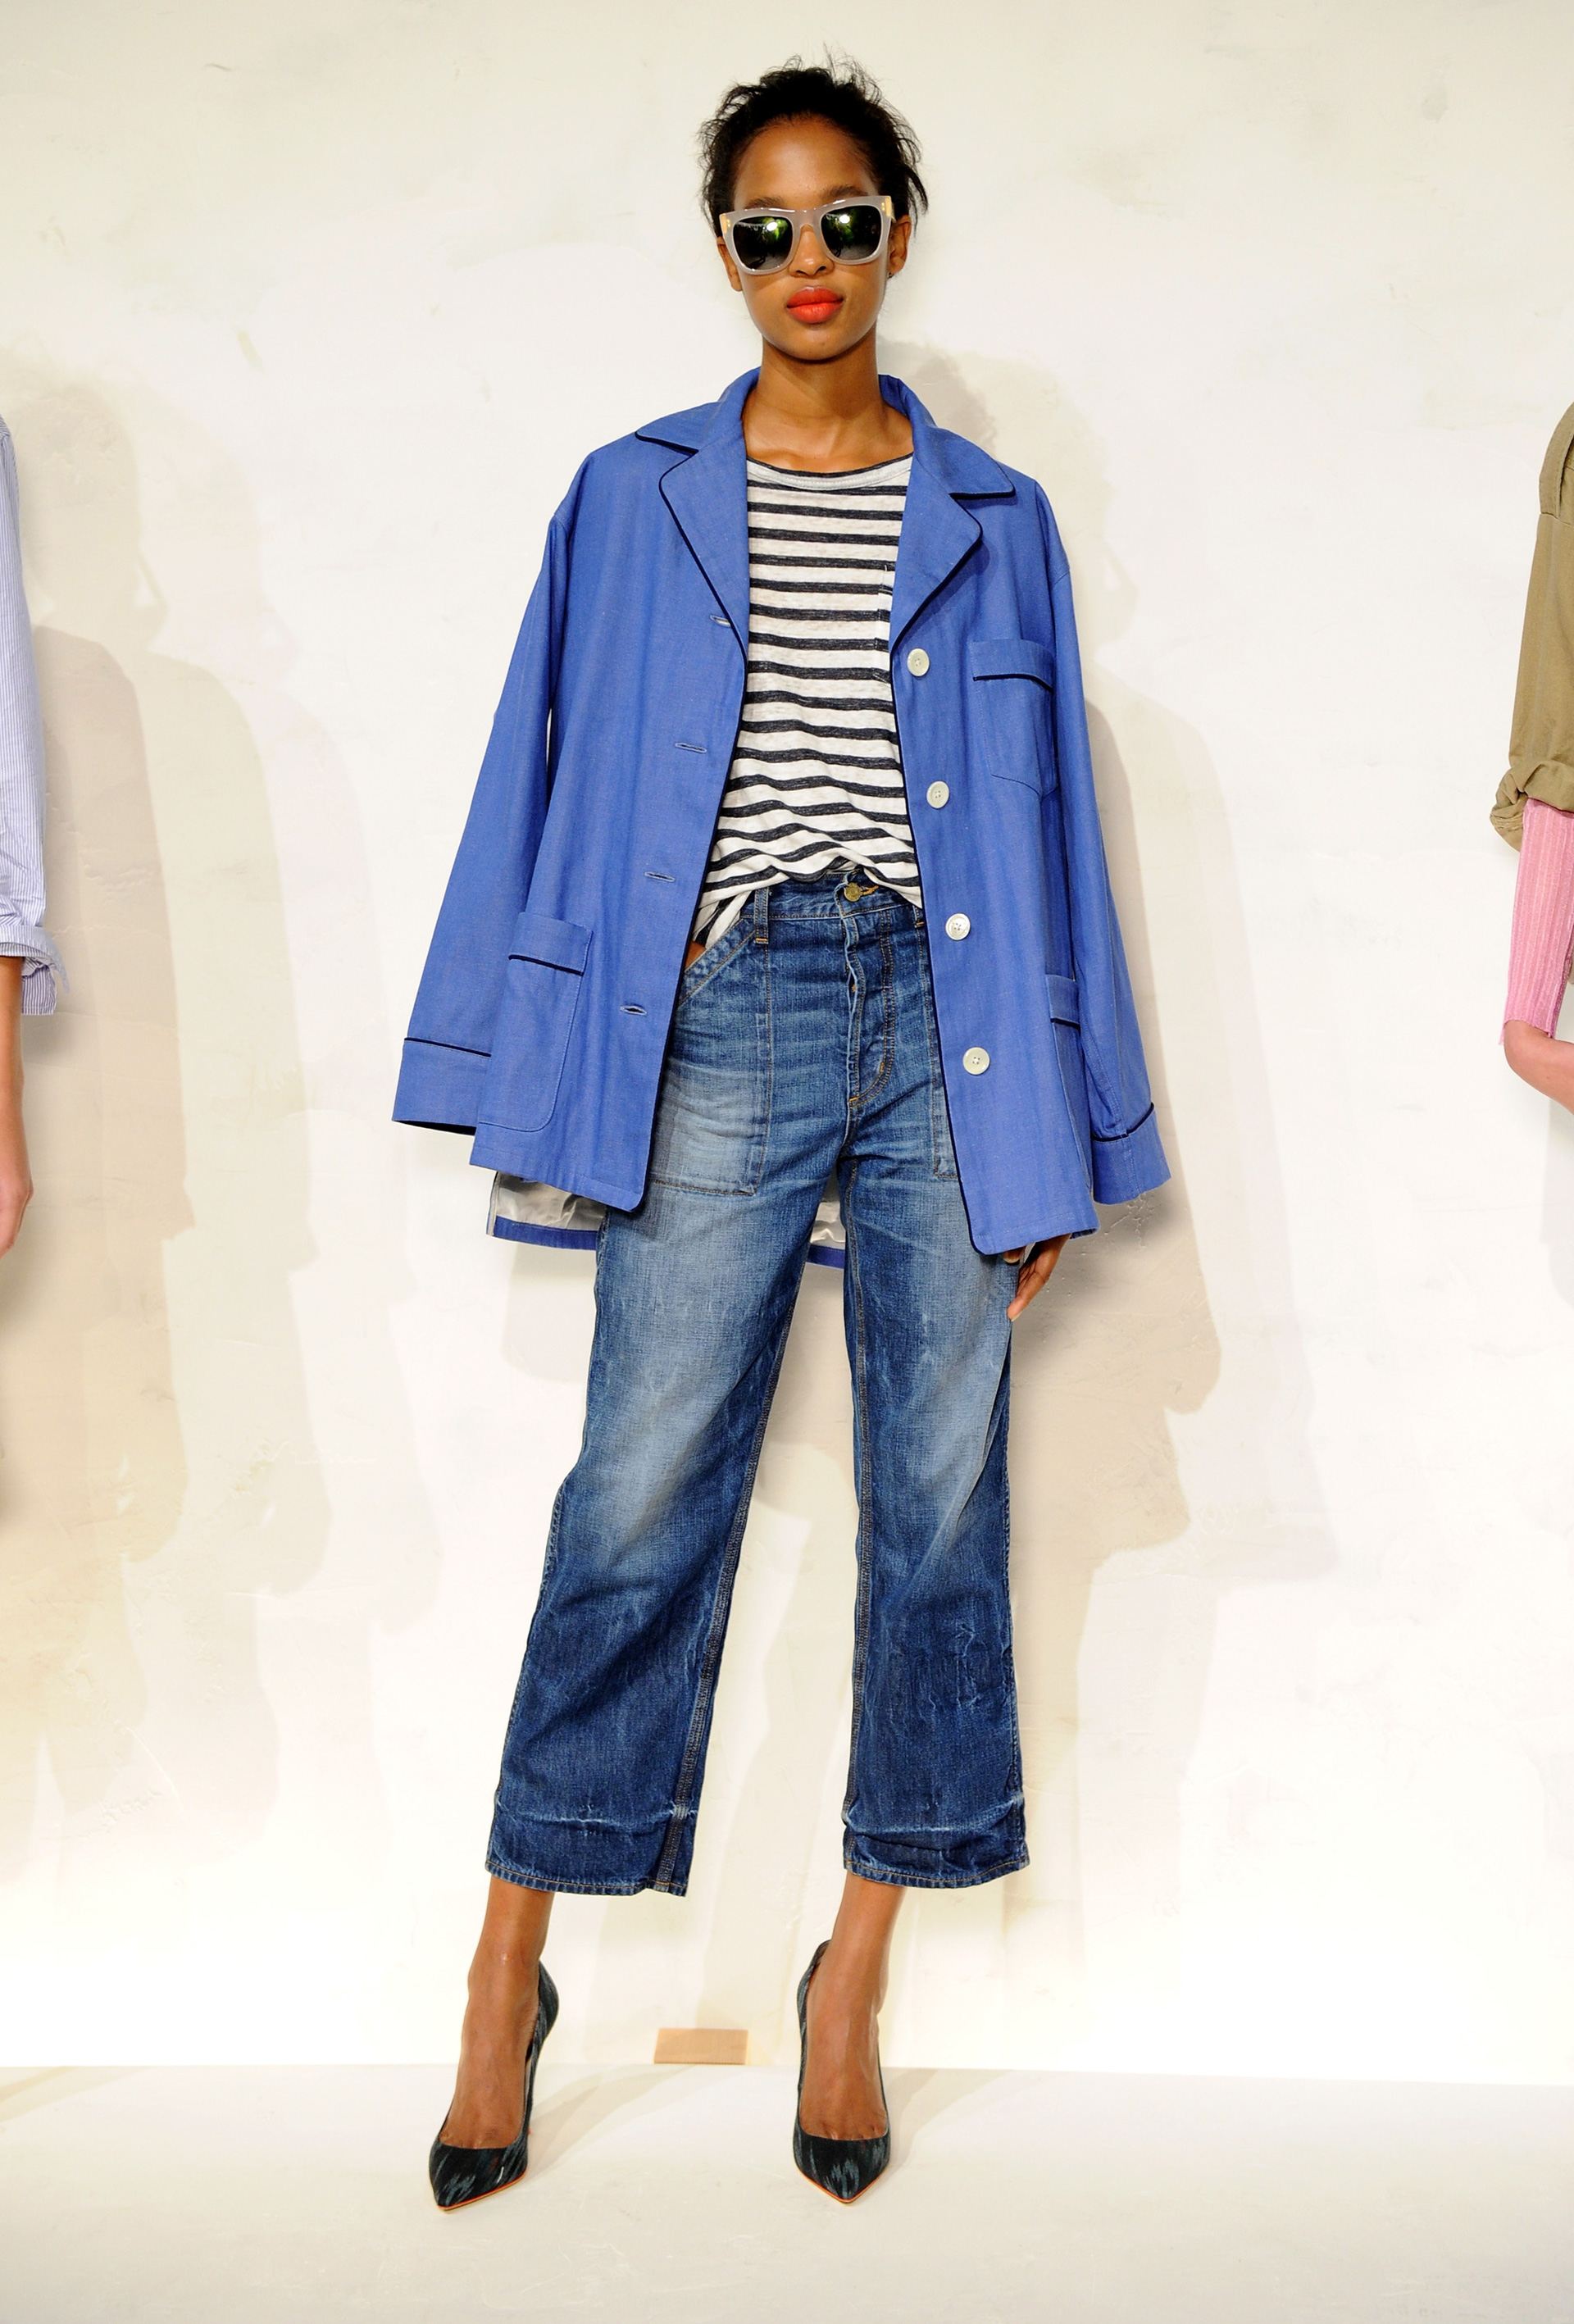 2015 J.Crew collection pieces 3